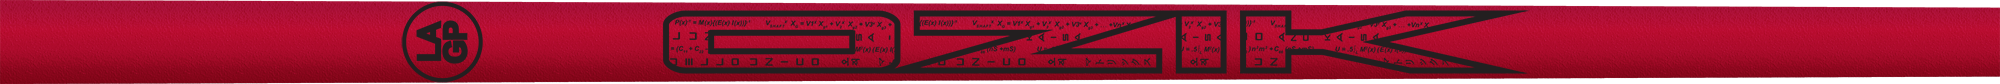 Ozik White Tie: Candy Apple Red Black Textured - Wood 40 A